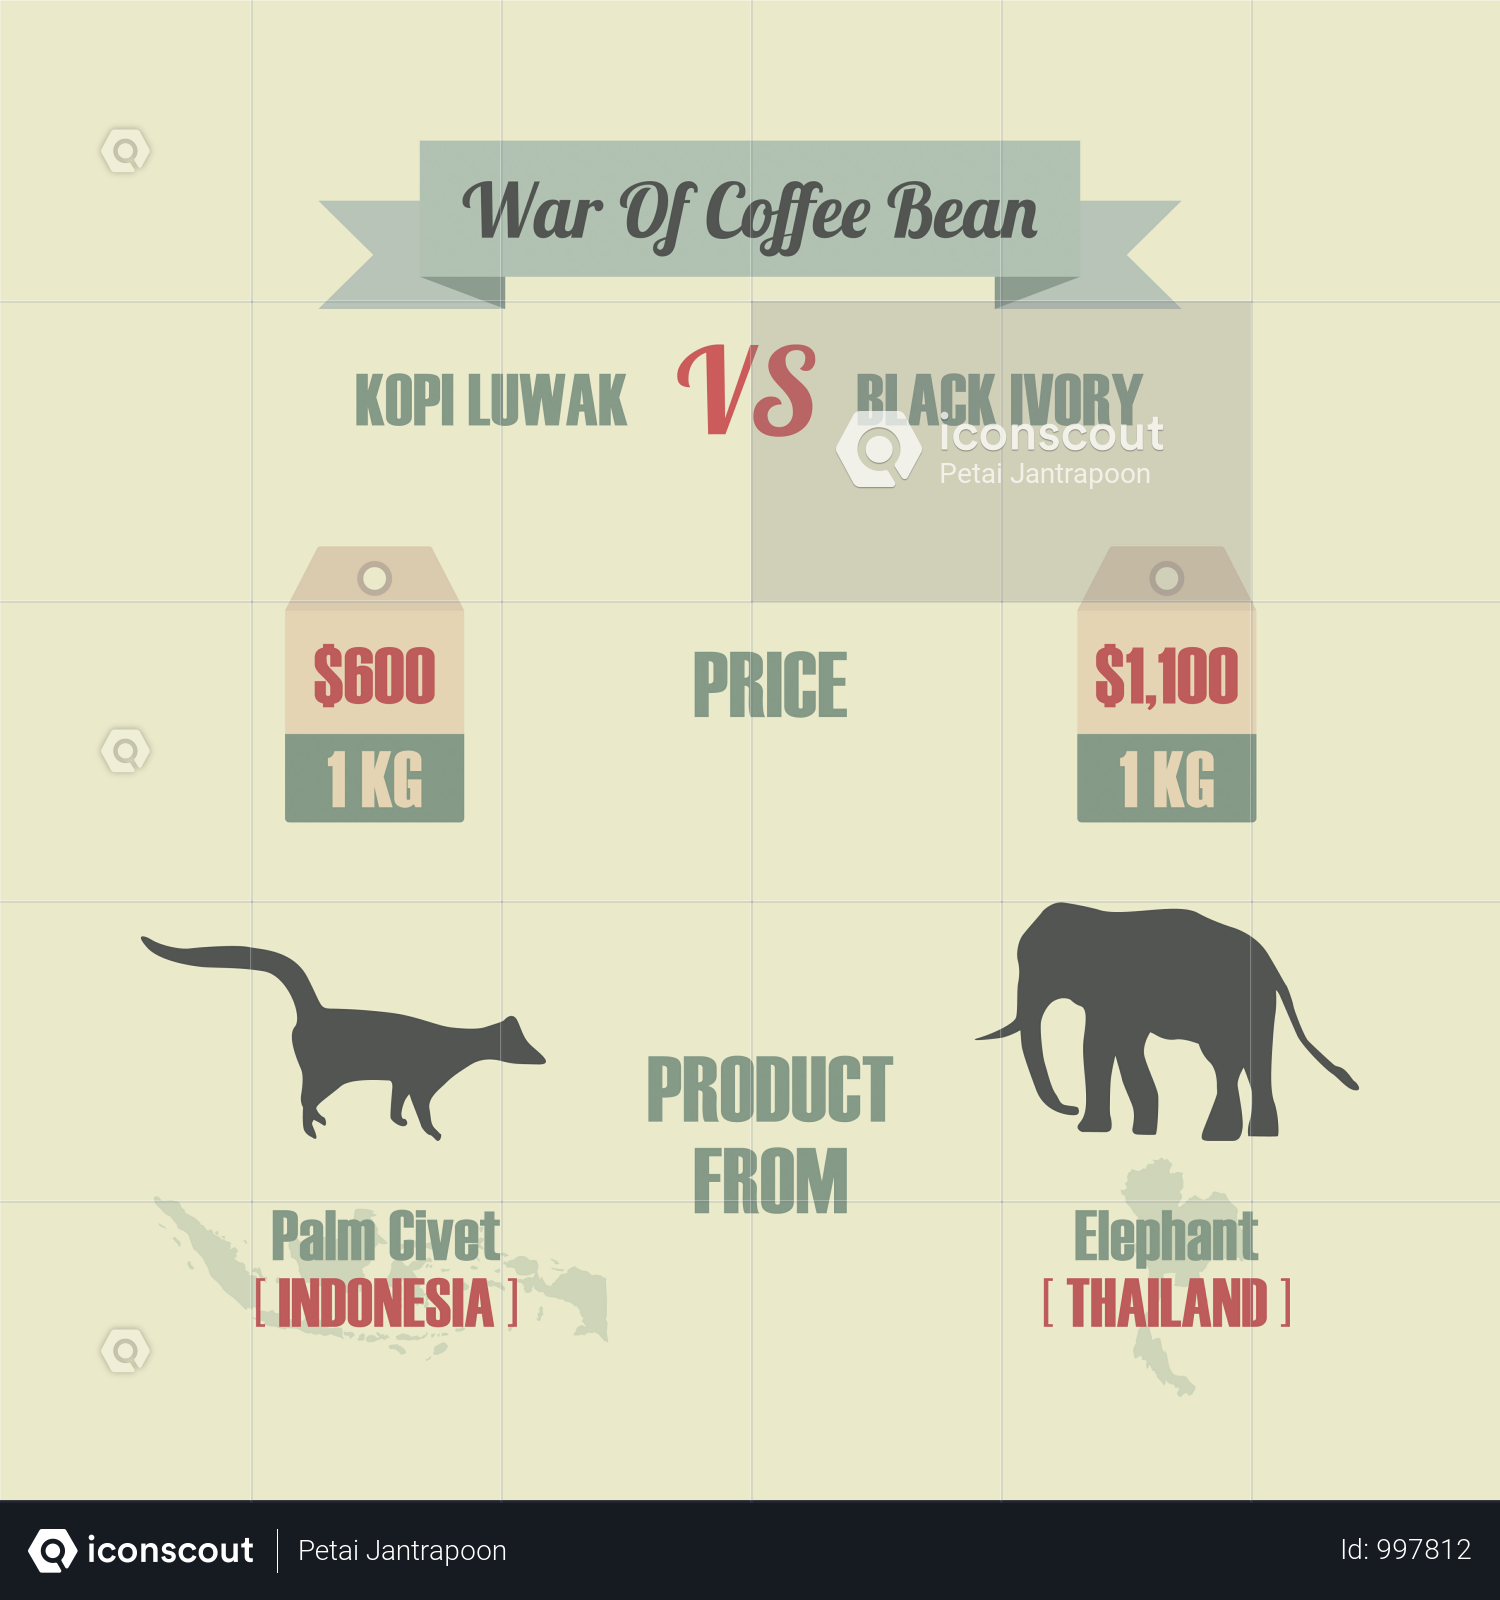 Premium War Of Coffee Bean Kopi Luwak Vs Black Ivory The Most Expensive Coffee In The World Illustration Download In Png Vector Format Expensive Coffee Coffee Beans Coffee Infographic